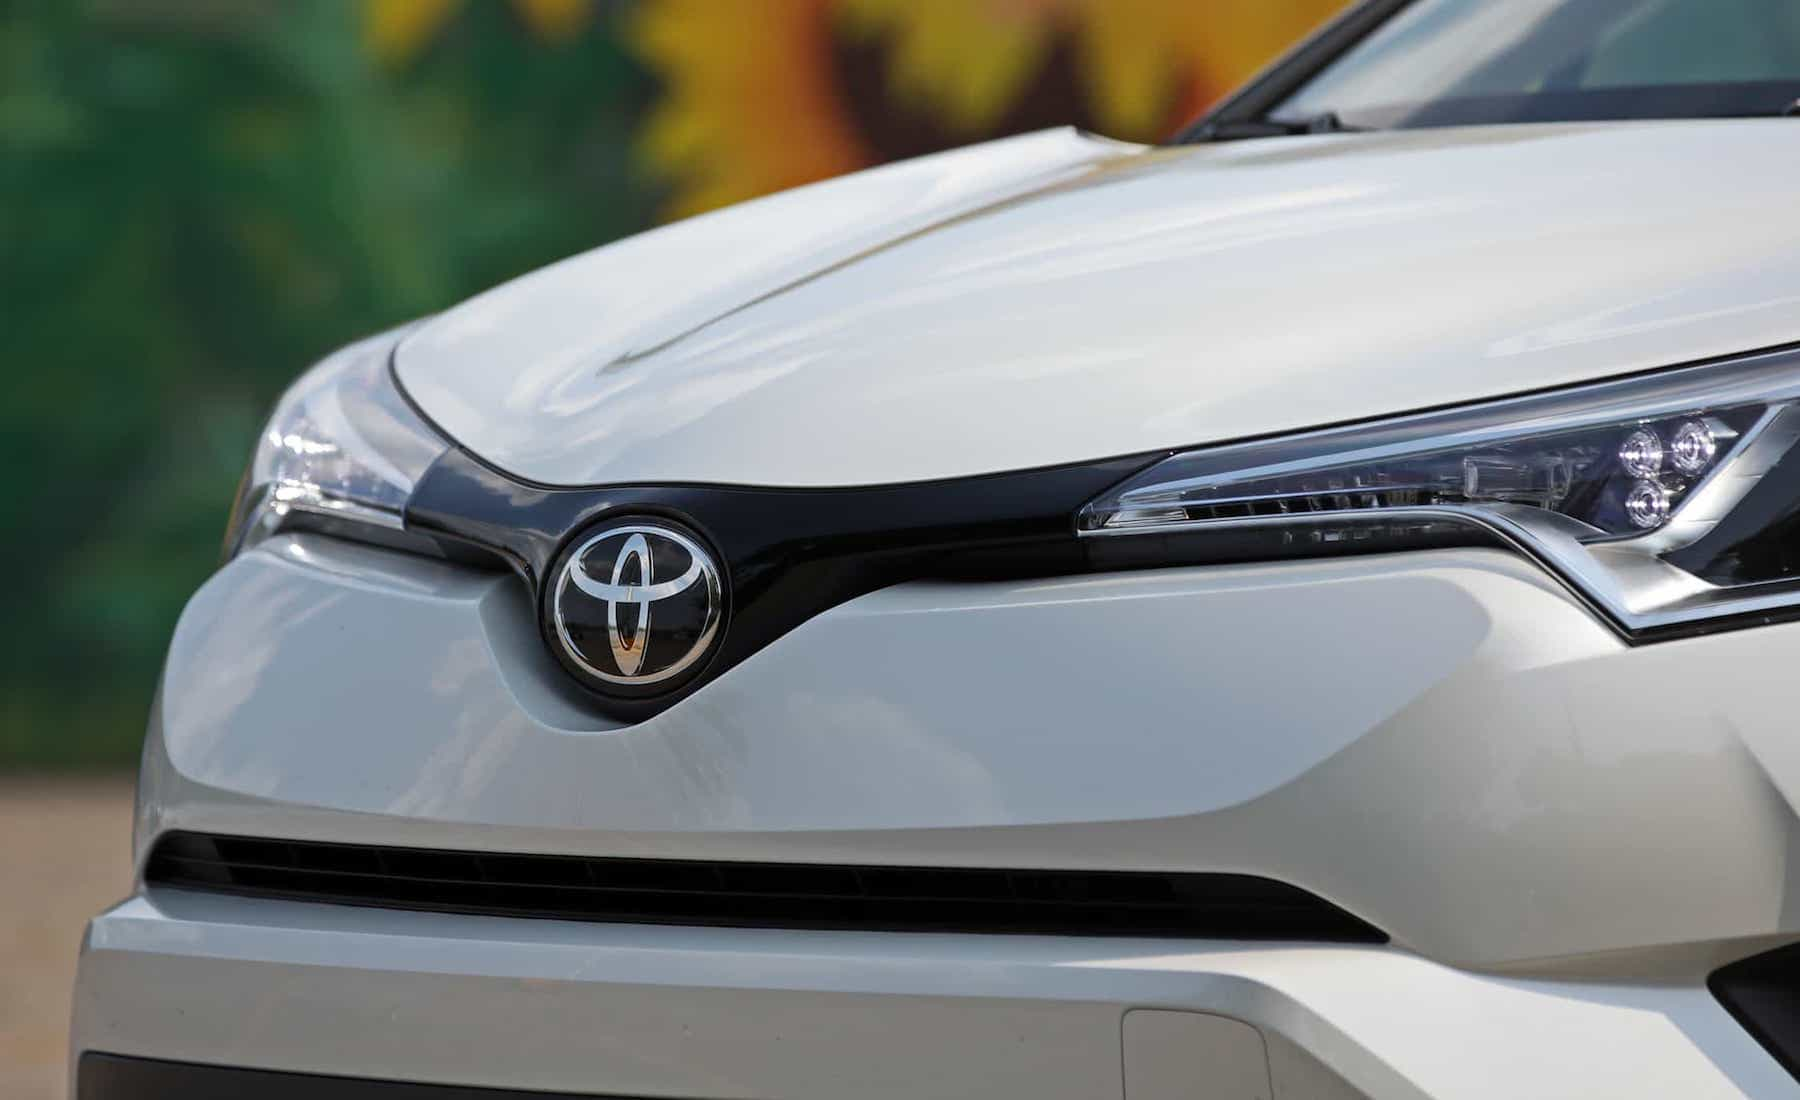 2018 Toyota C HR XLE Premium Exterior View Front Grille And Badge (Photo 9 of 52)